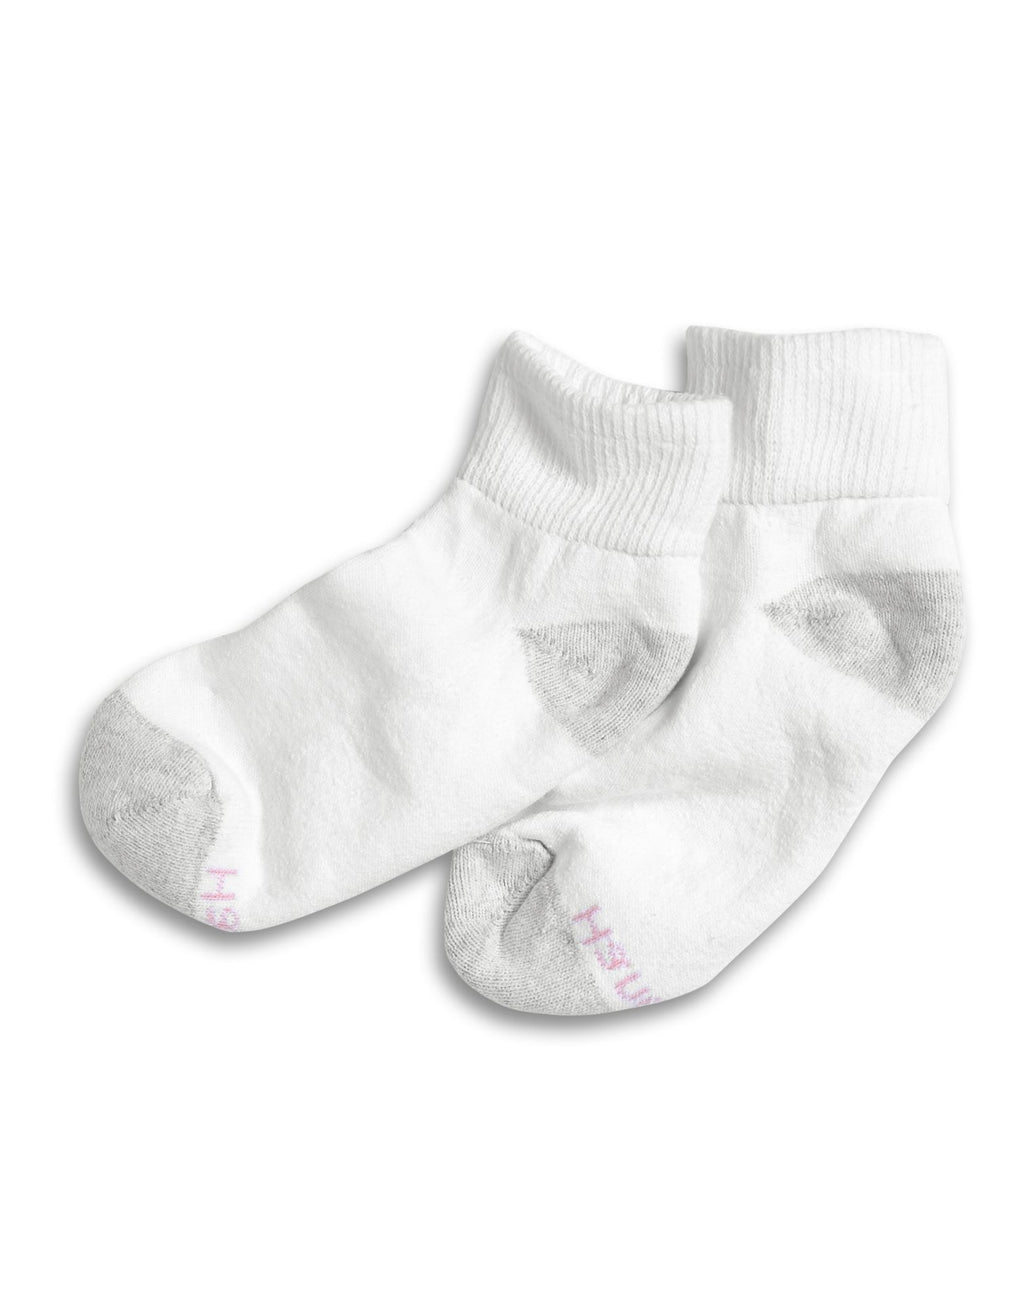 Hanes Women's 10 Pack Ankle Sock